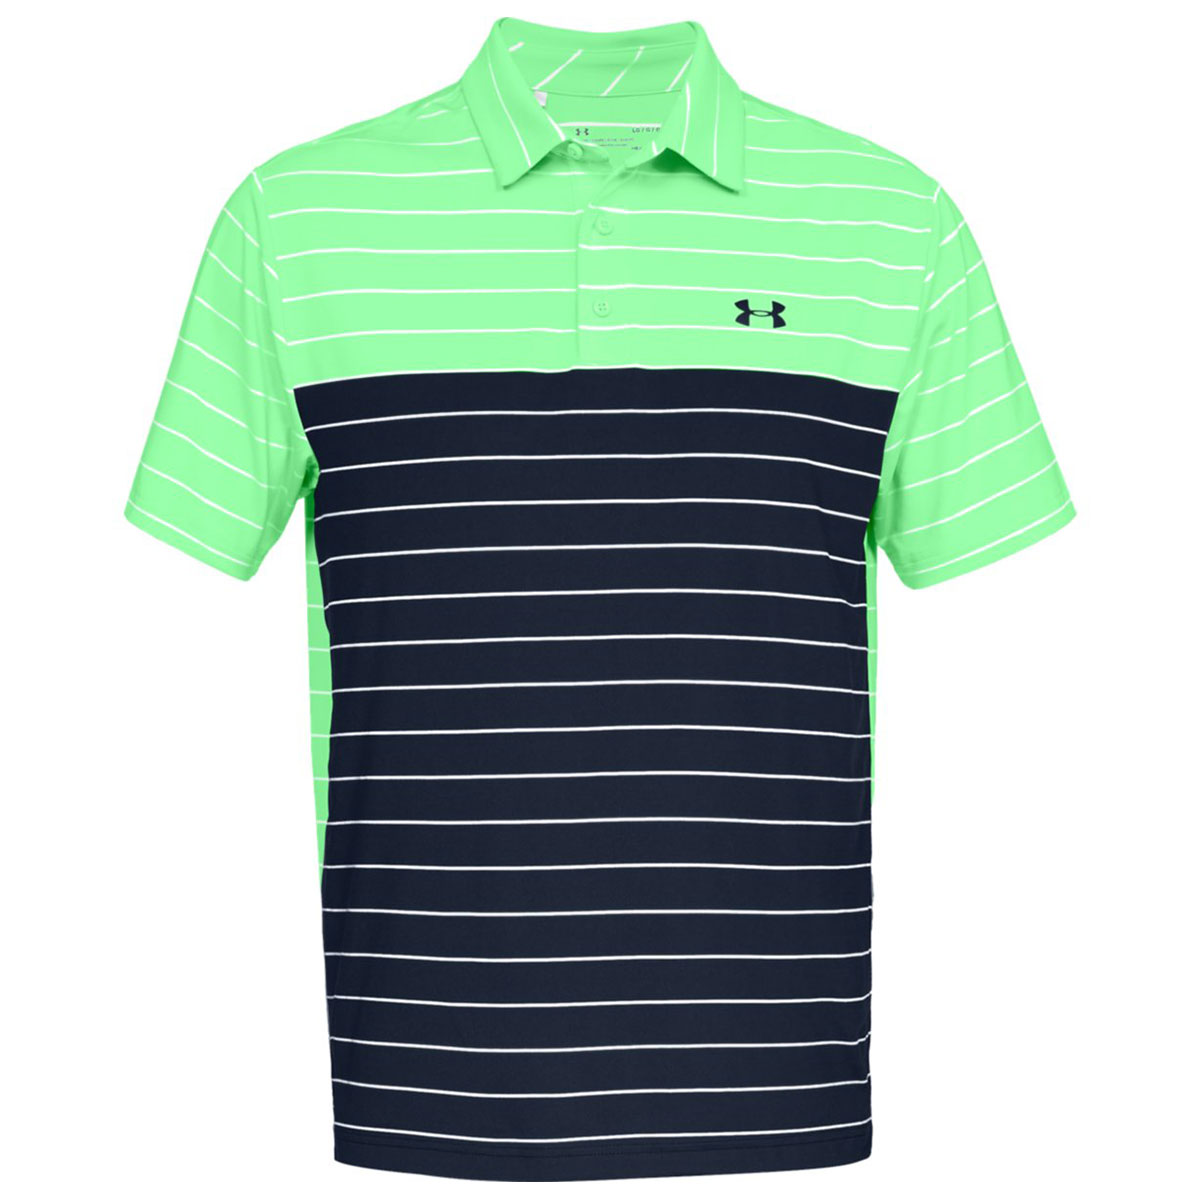 Under-Armour-Mens-UA-Playoff-Performance-Golf-Polo-Shirt-33-OFF-RRP thumbnail 51